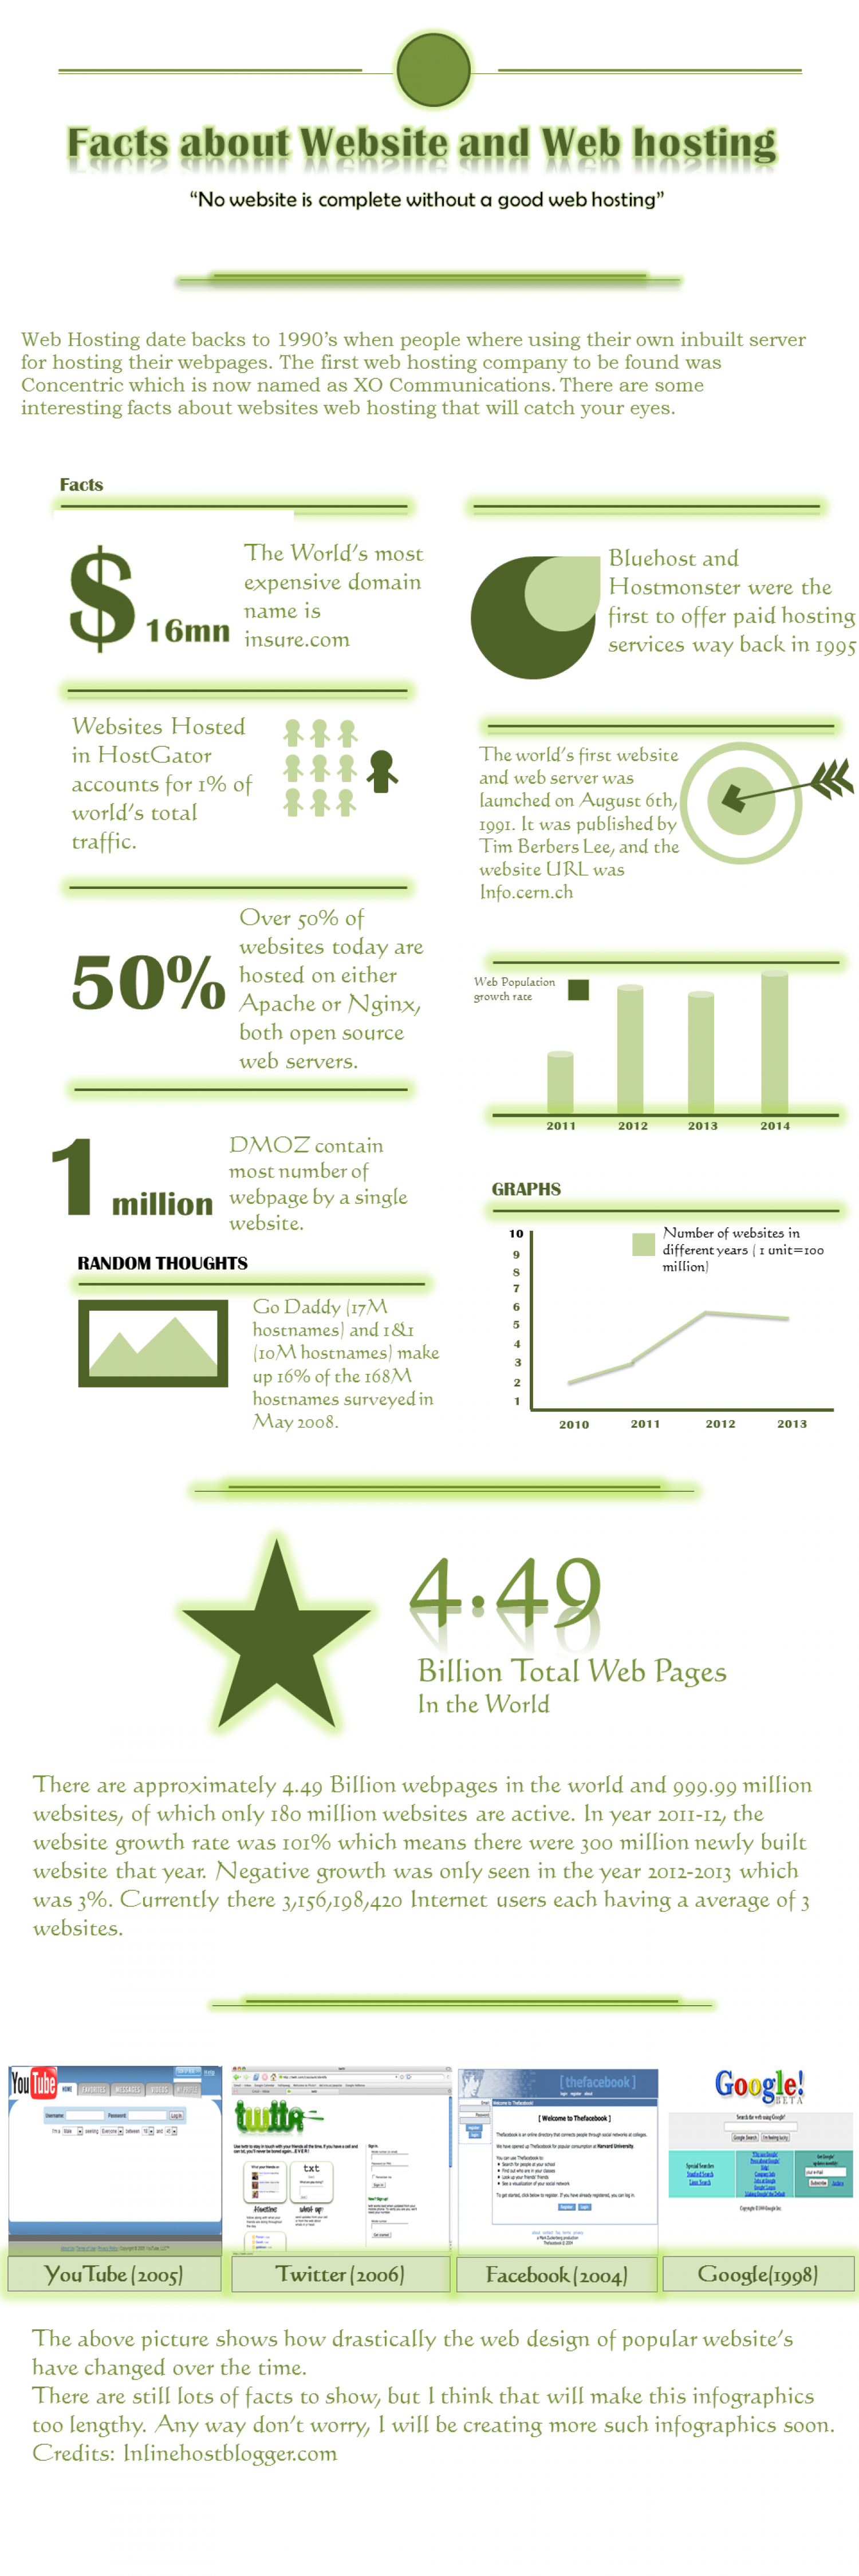 Facts about Webhosting and websites Infographic